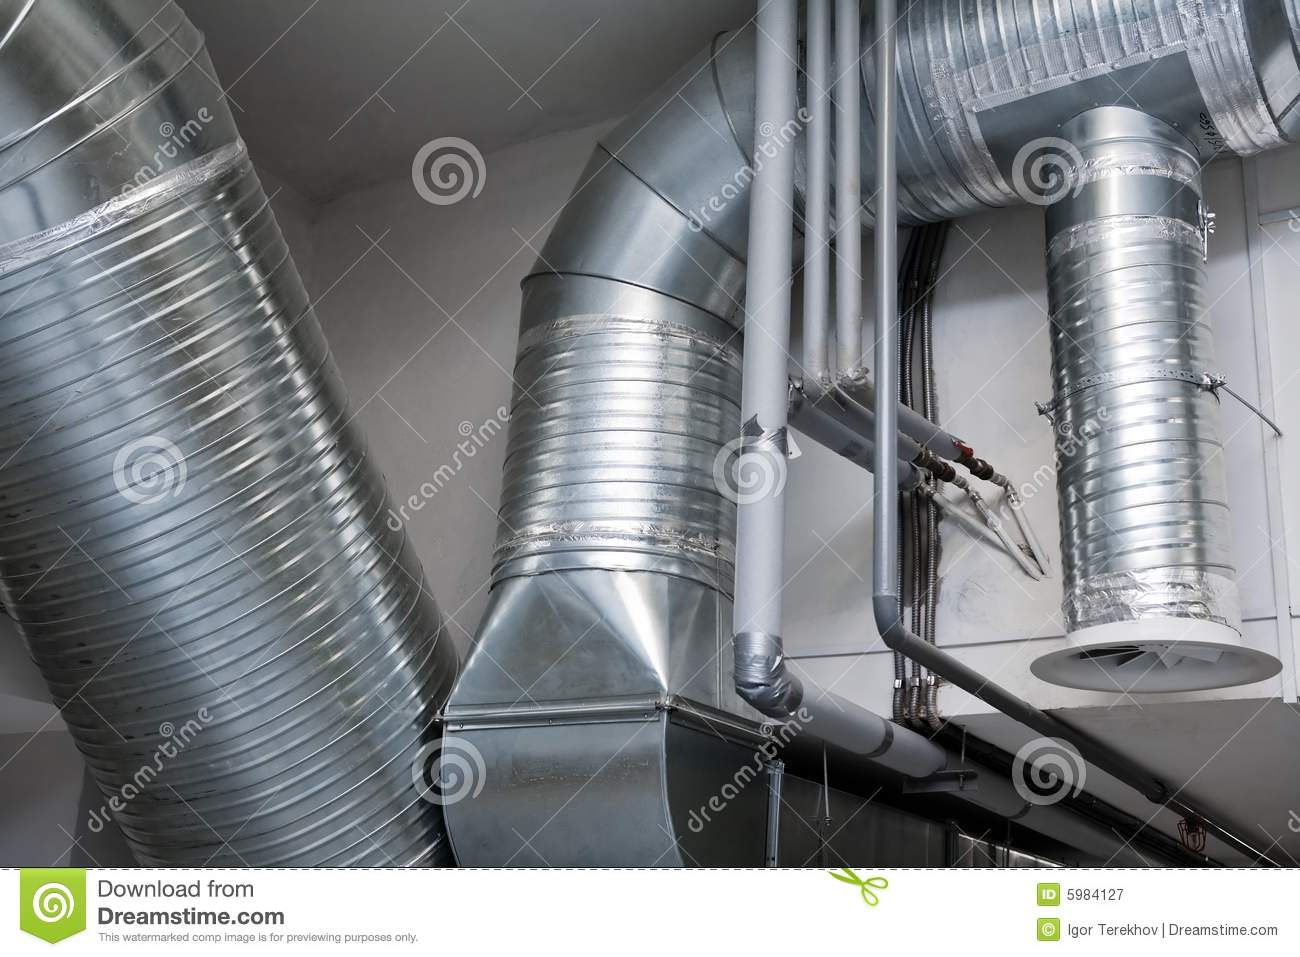 System of ventilating pipes